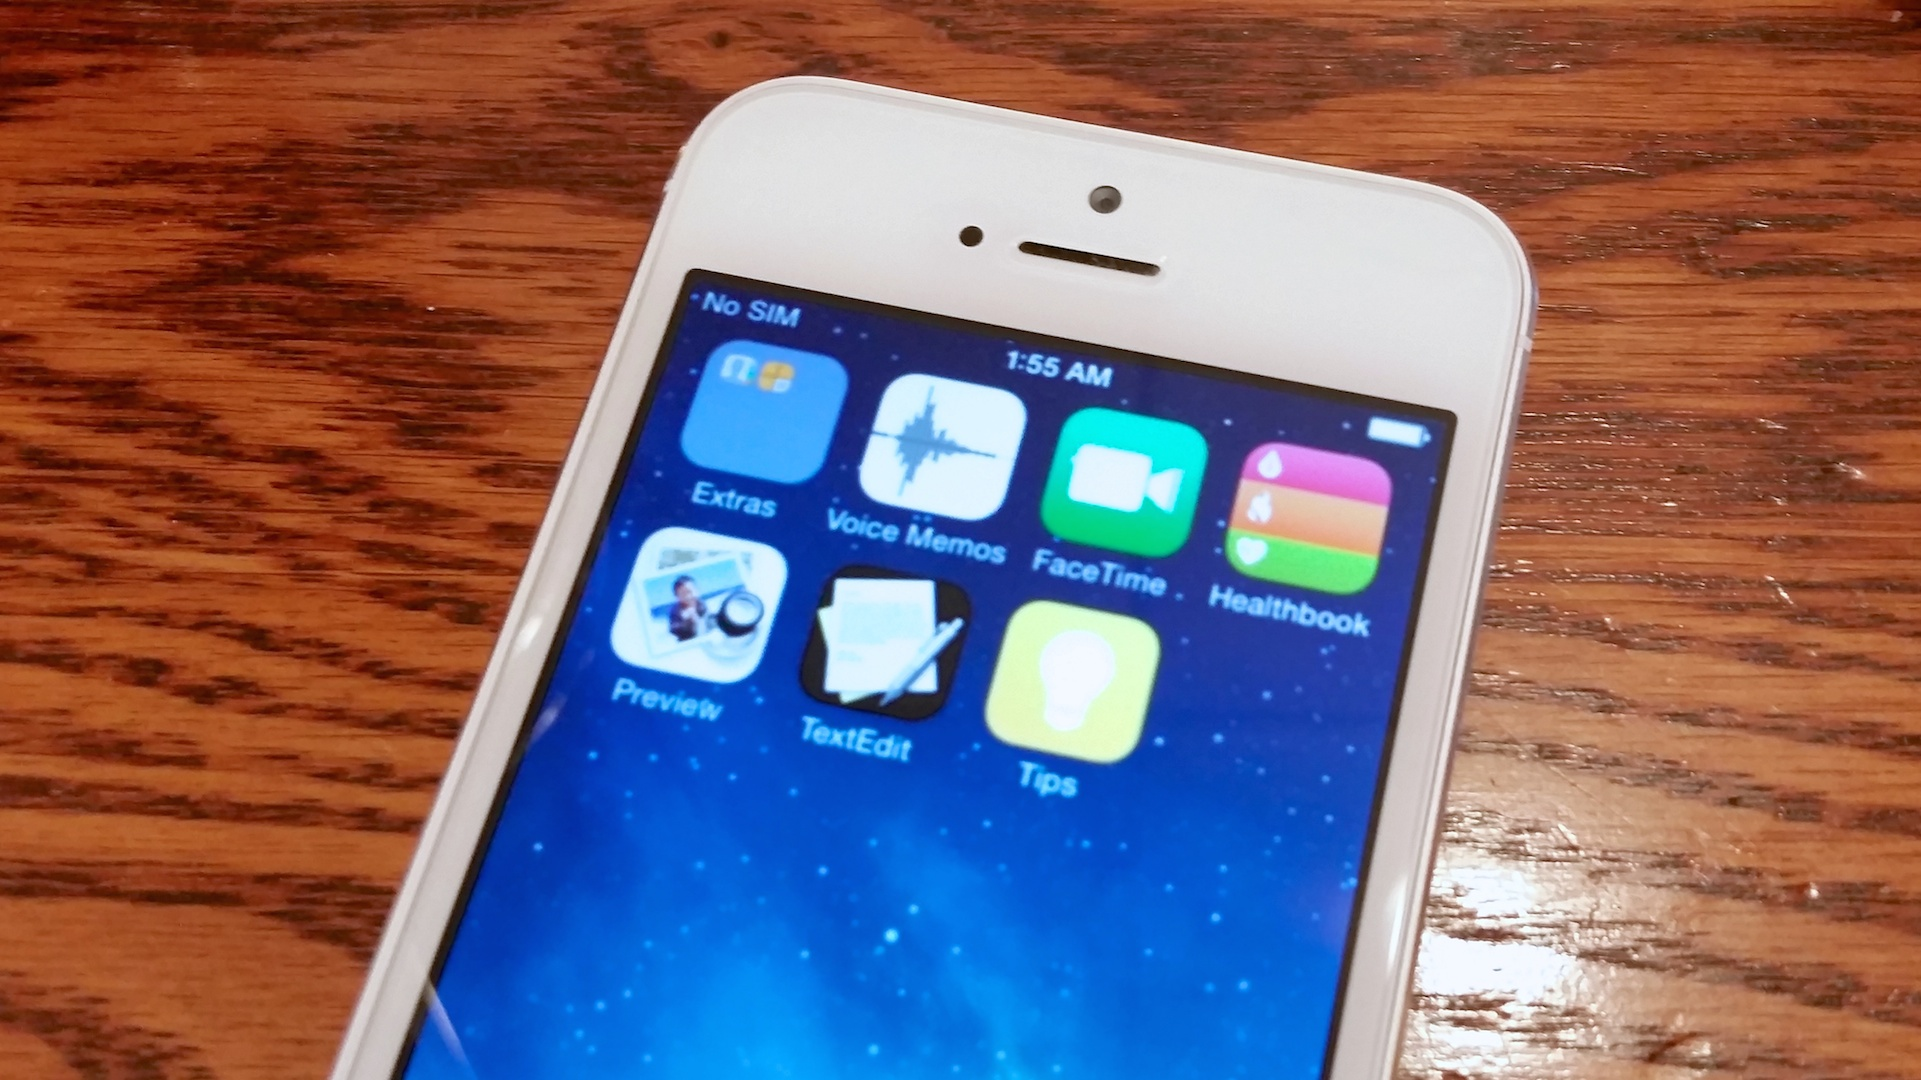 iOS 8: What We Know Ahead of WWDC 2014